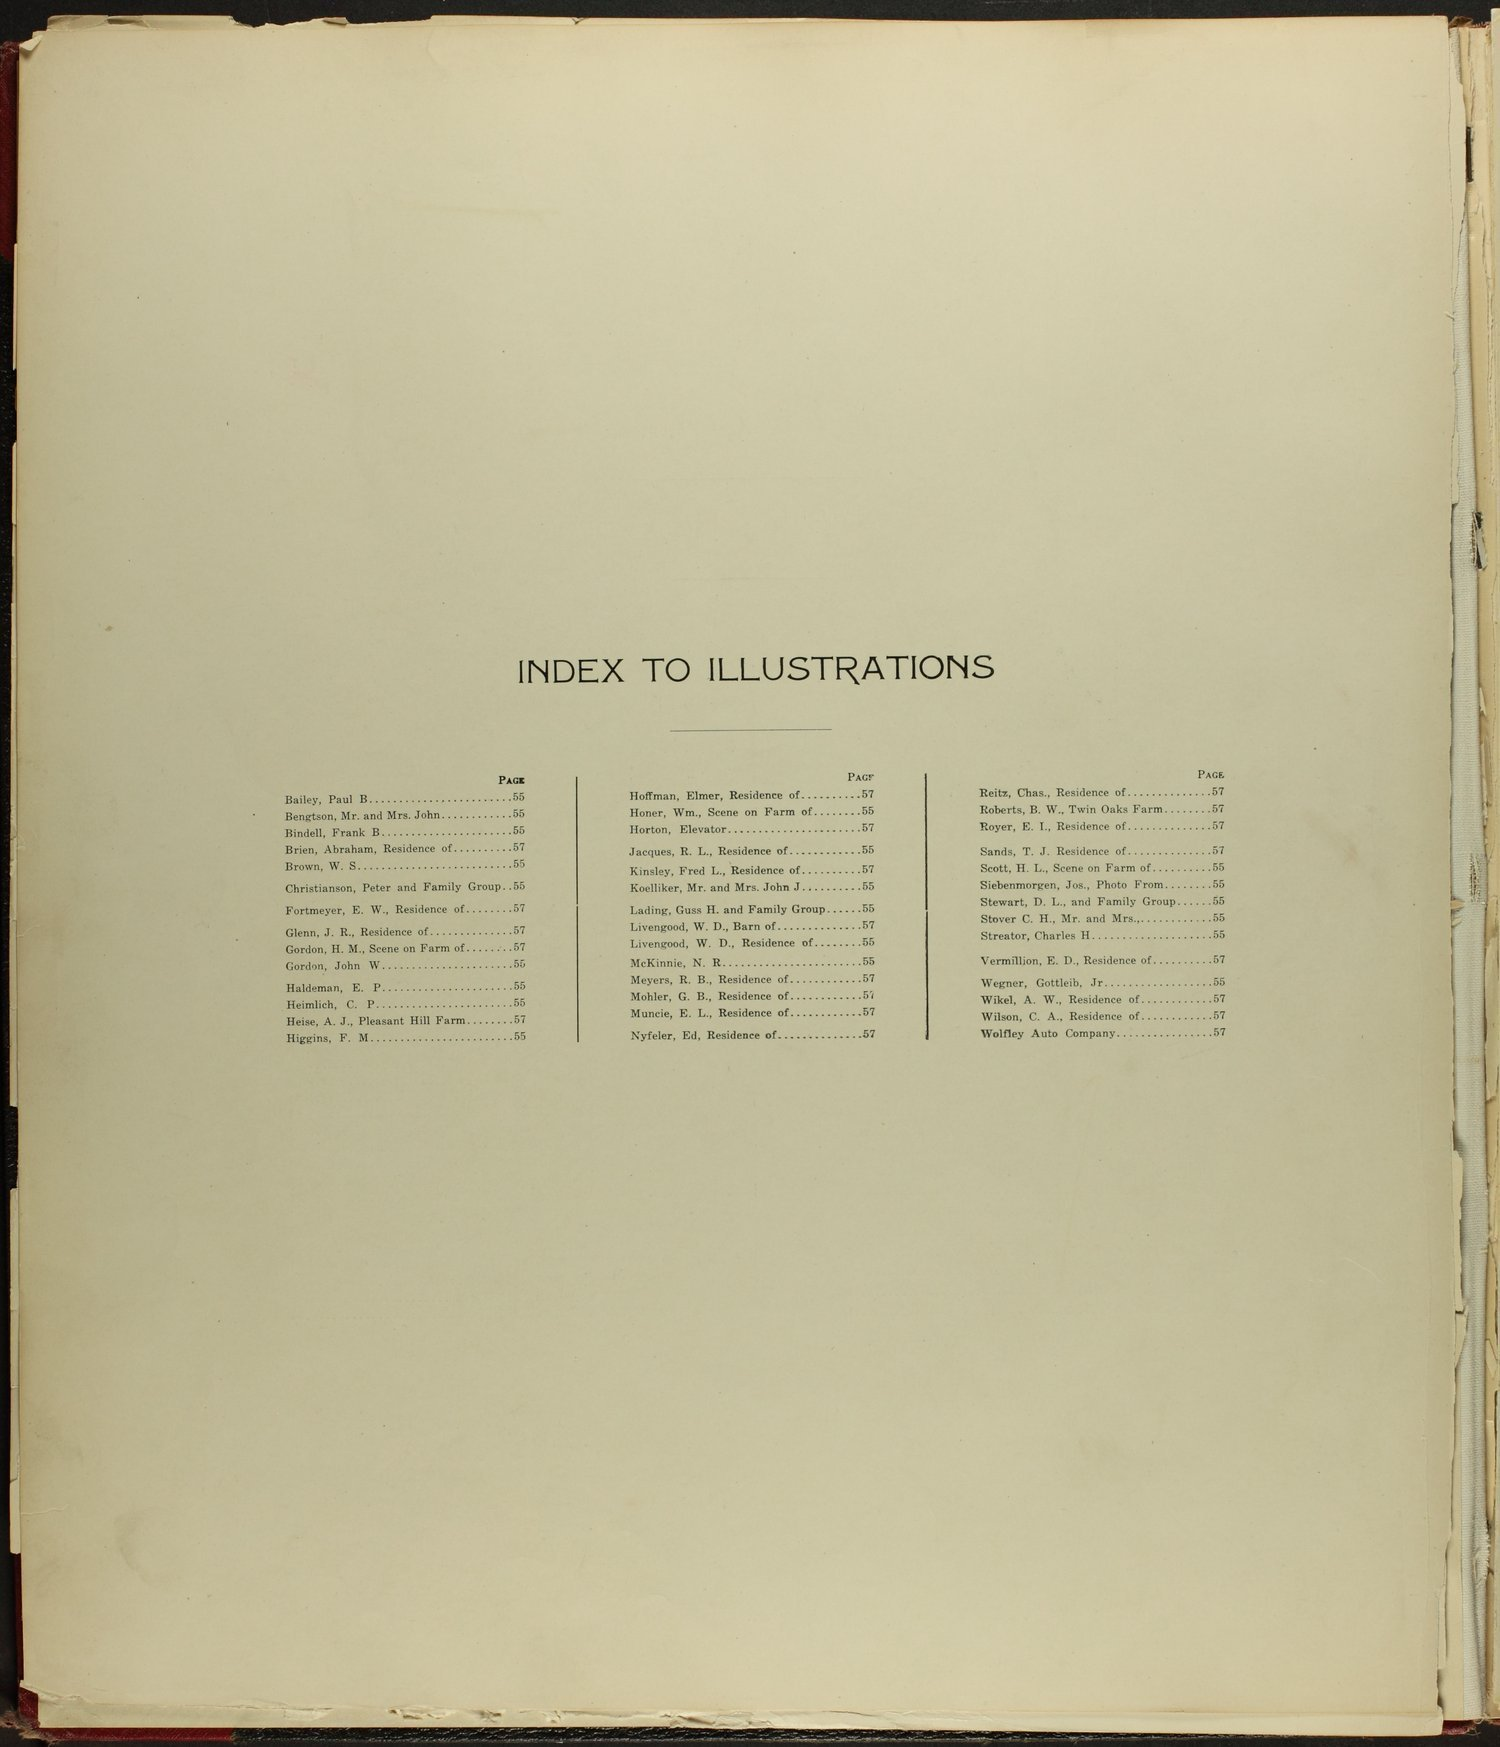 Standard atlas of Brown County, Kansas - Index to Illustrations